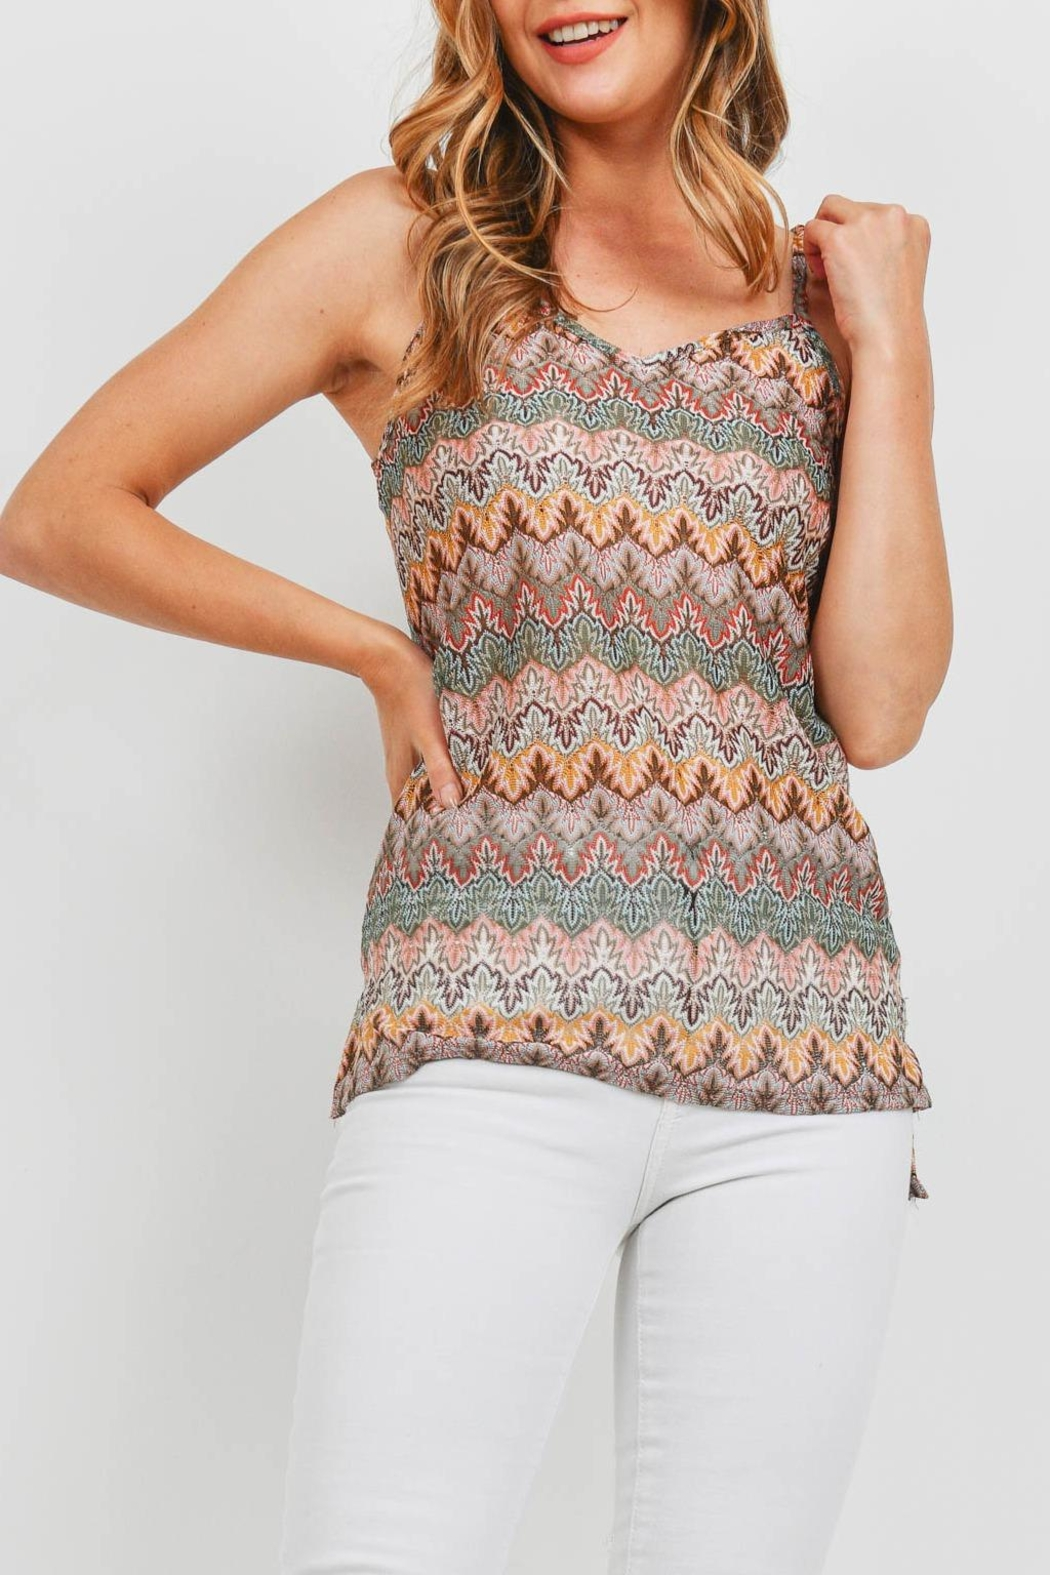 Riah Fashion Multi Color Top - Side Cropped Image